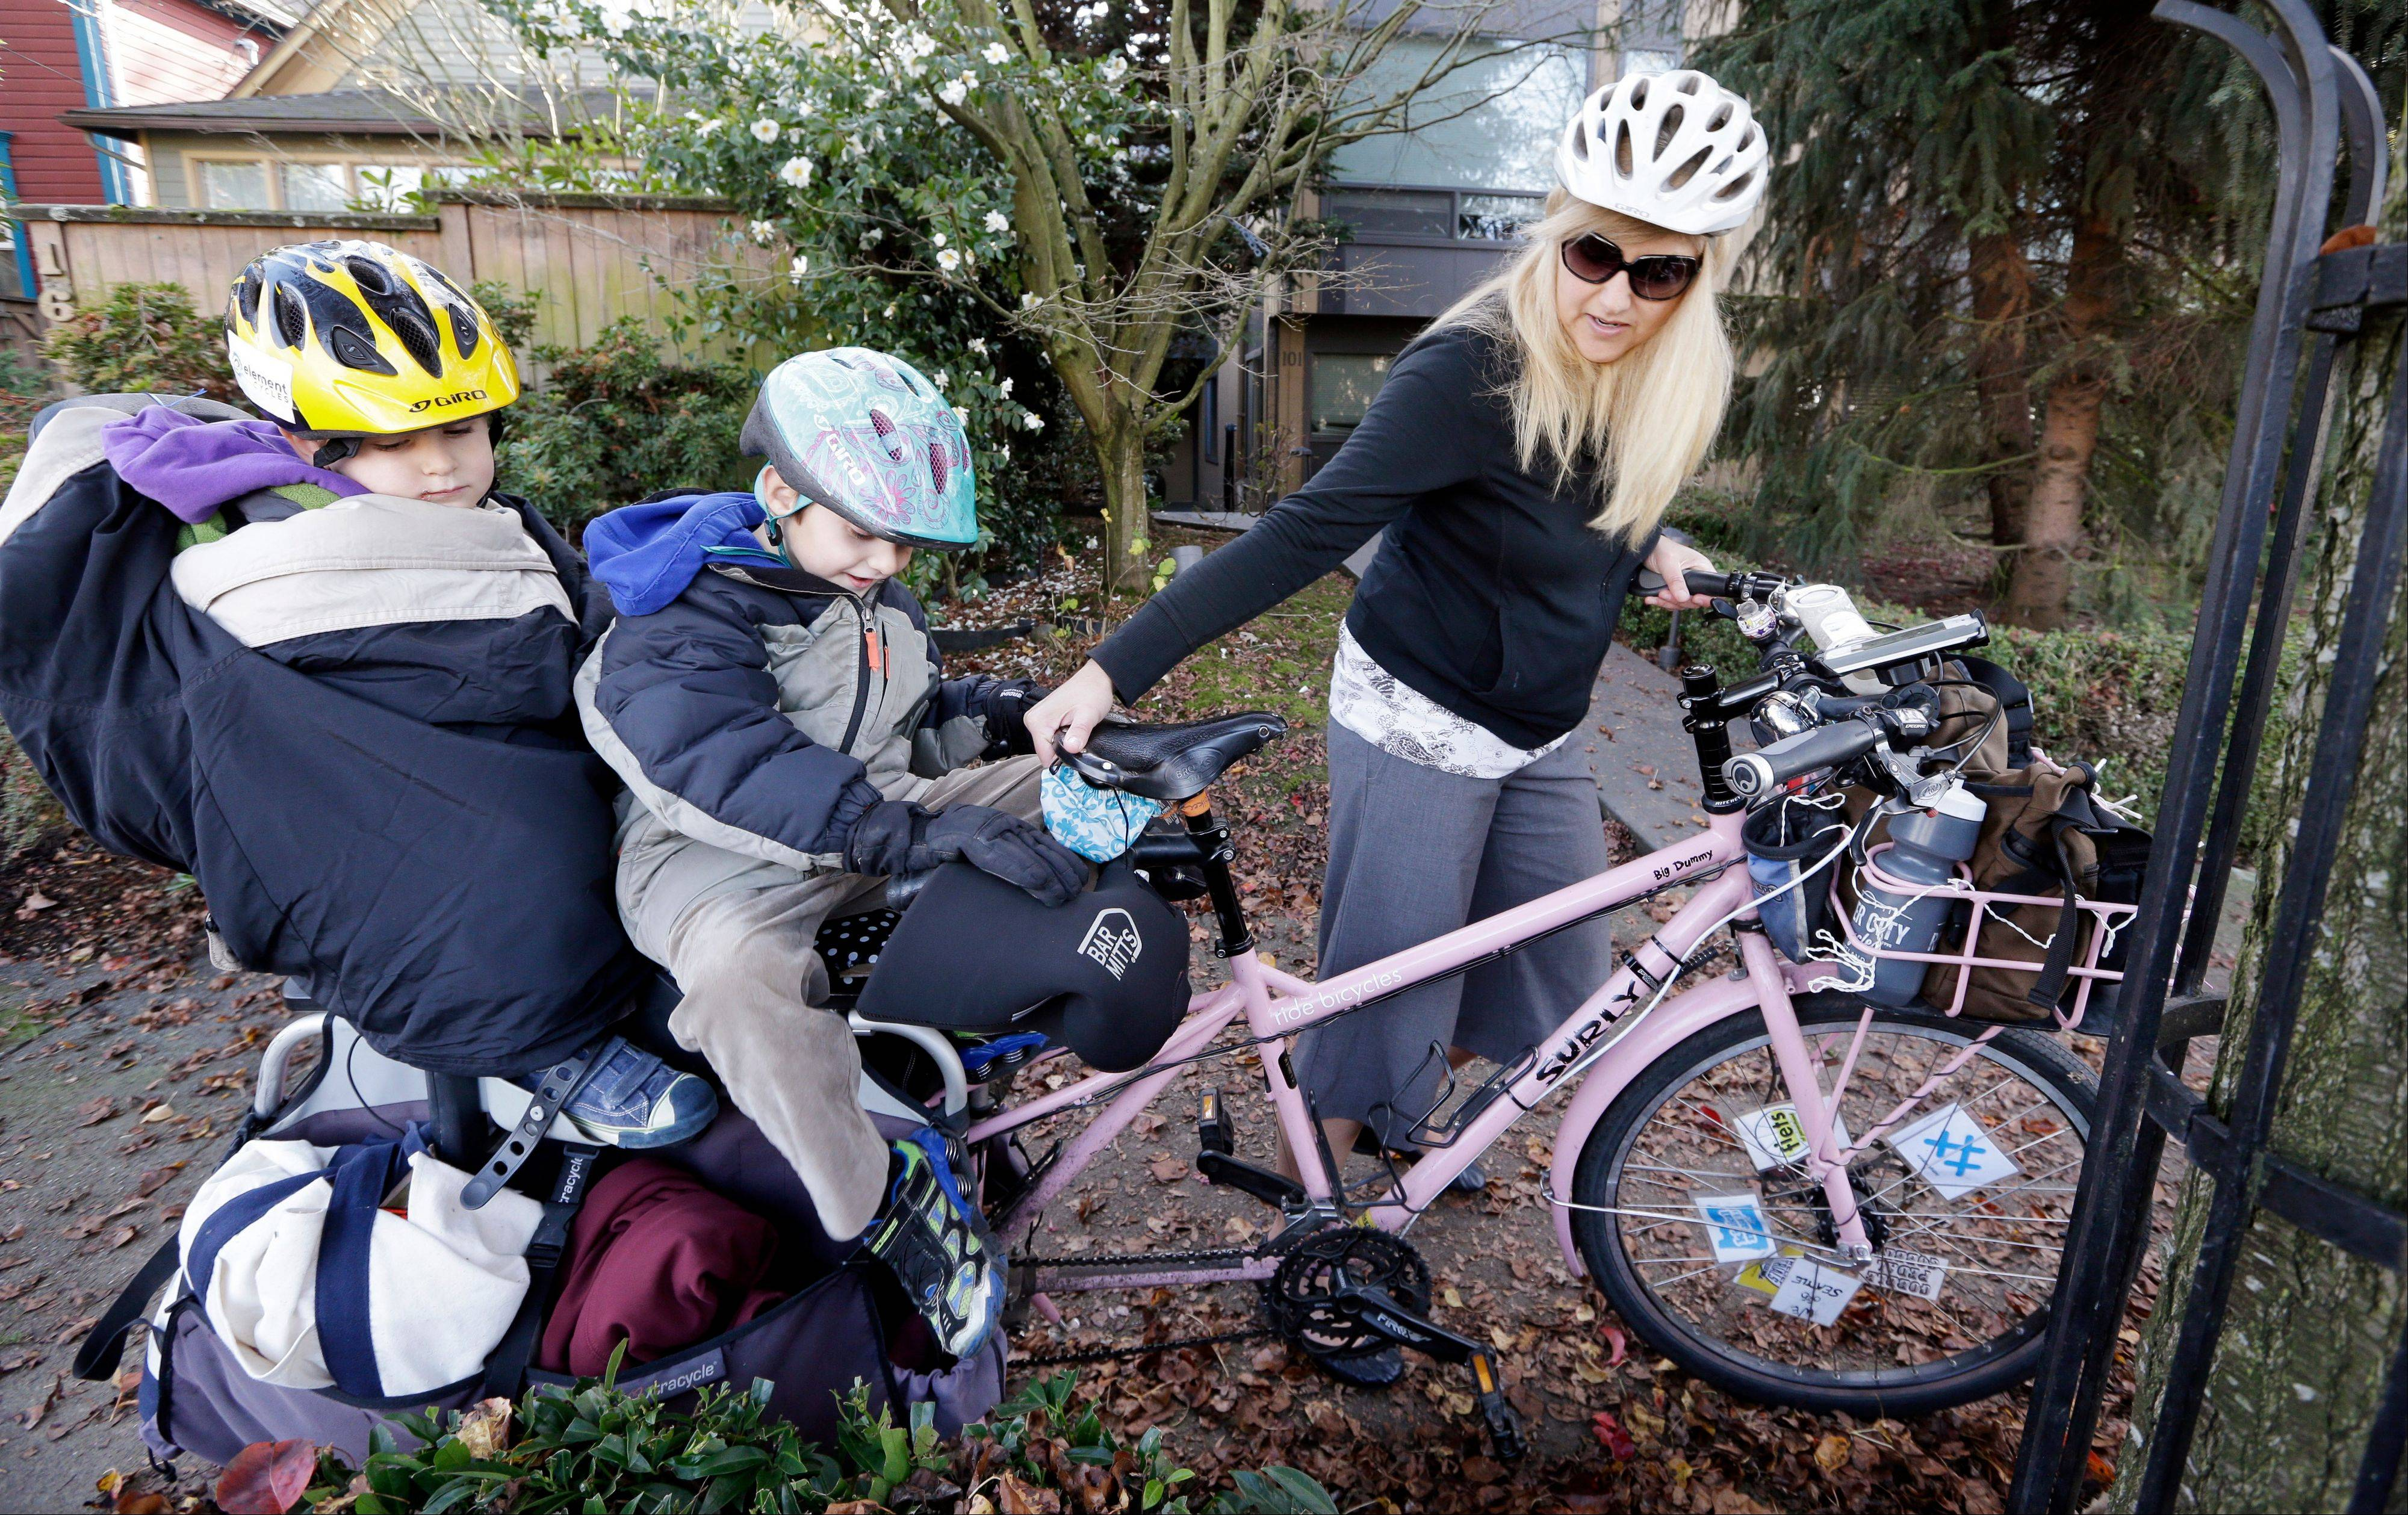 In this photo taken Nov. 27, 2013, Madi Carlson maneuvers the family cargo bike as her sons Rijder, 4, left, and Brandt, 6, sit aboard in Seattle. People in the Pacific Northwest are pushing the limits of what they can carry using so-called cargo bikes, shuttling children, groceries, fish and kegs of beer.